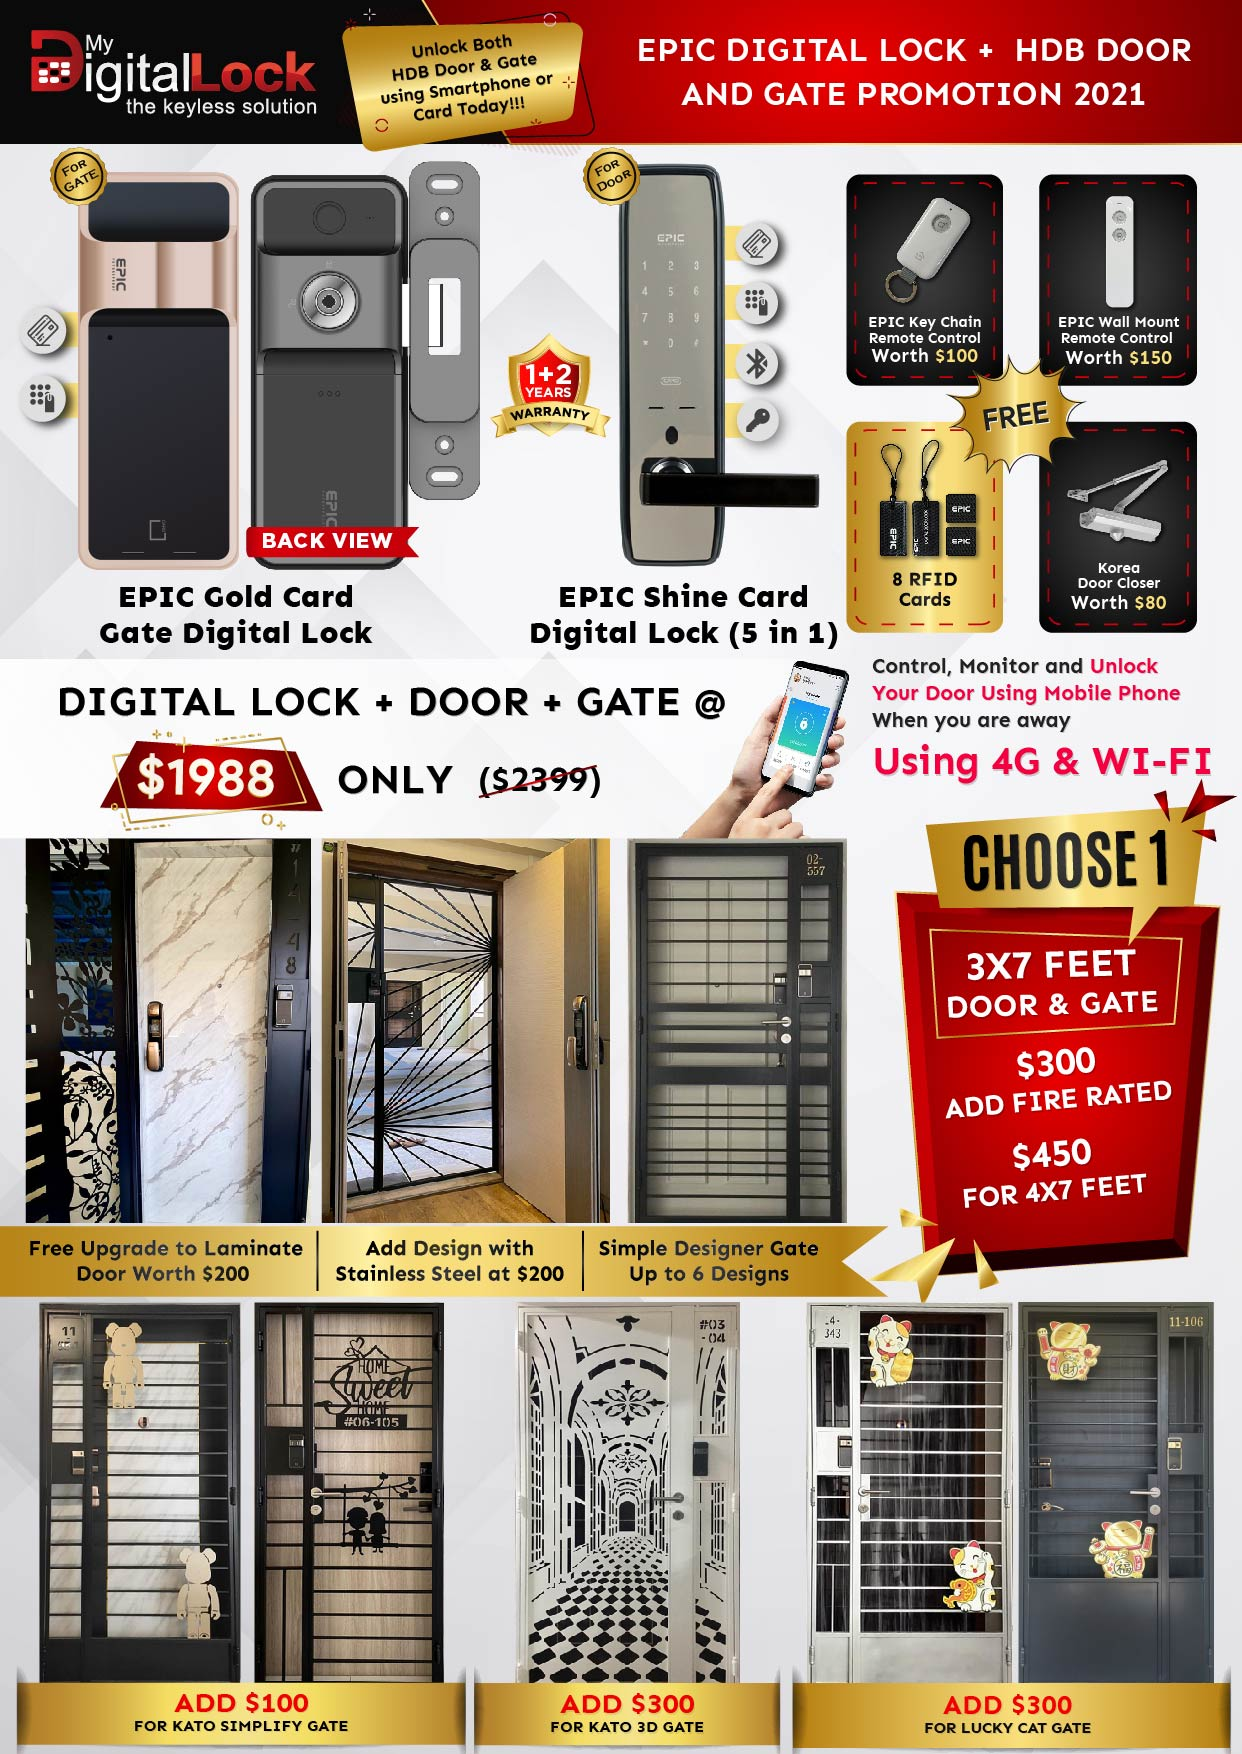 Epic Digital Lock and HDB Gate